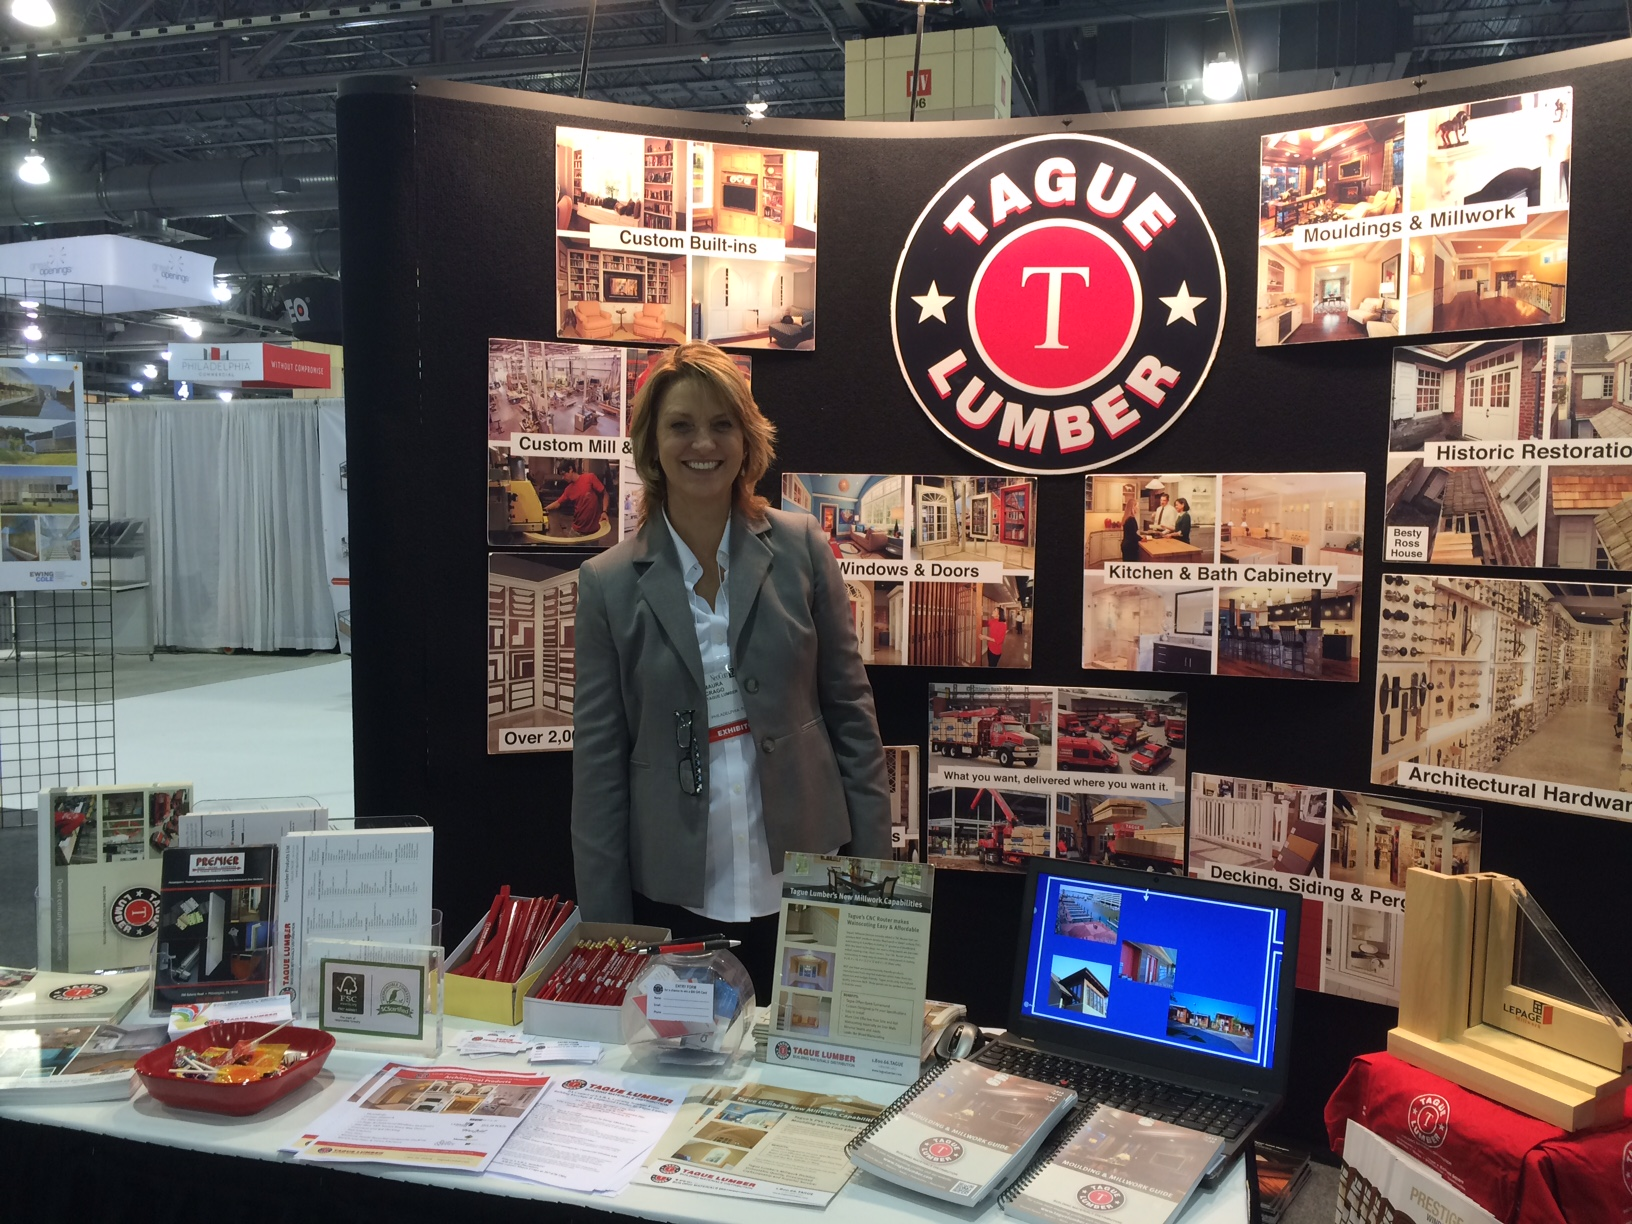 Maura Crago – Architectural Products Representative